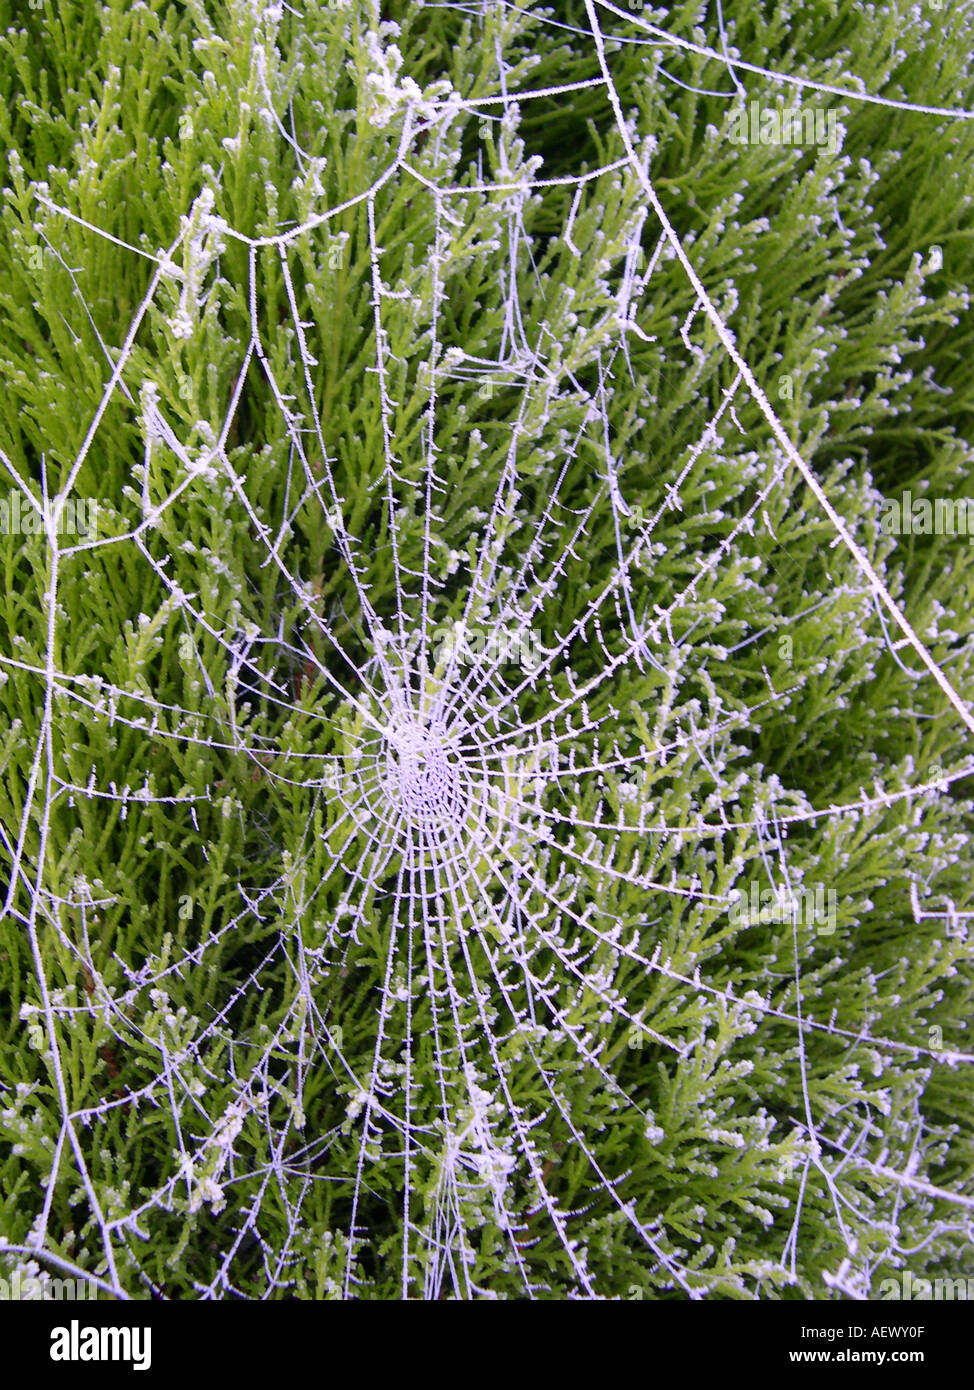 Spiders web hi-lighted by frost. - Stock Image